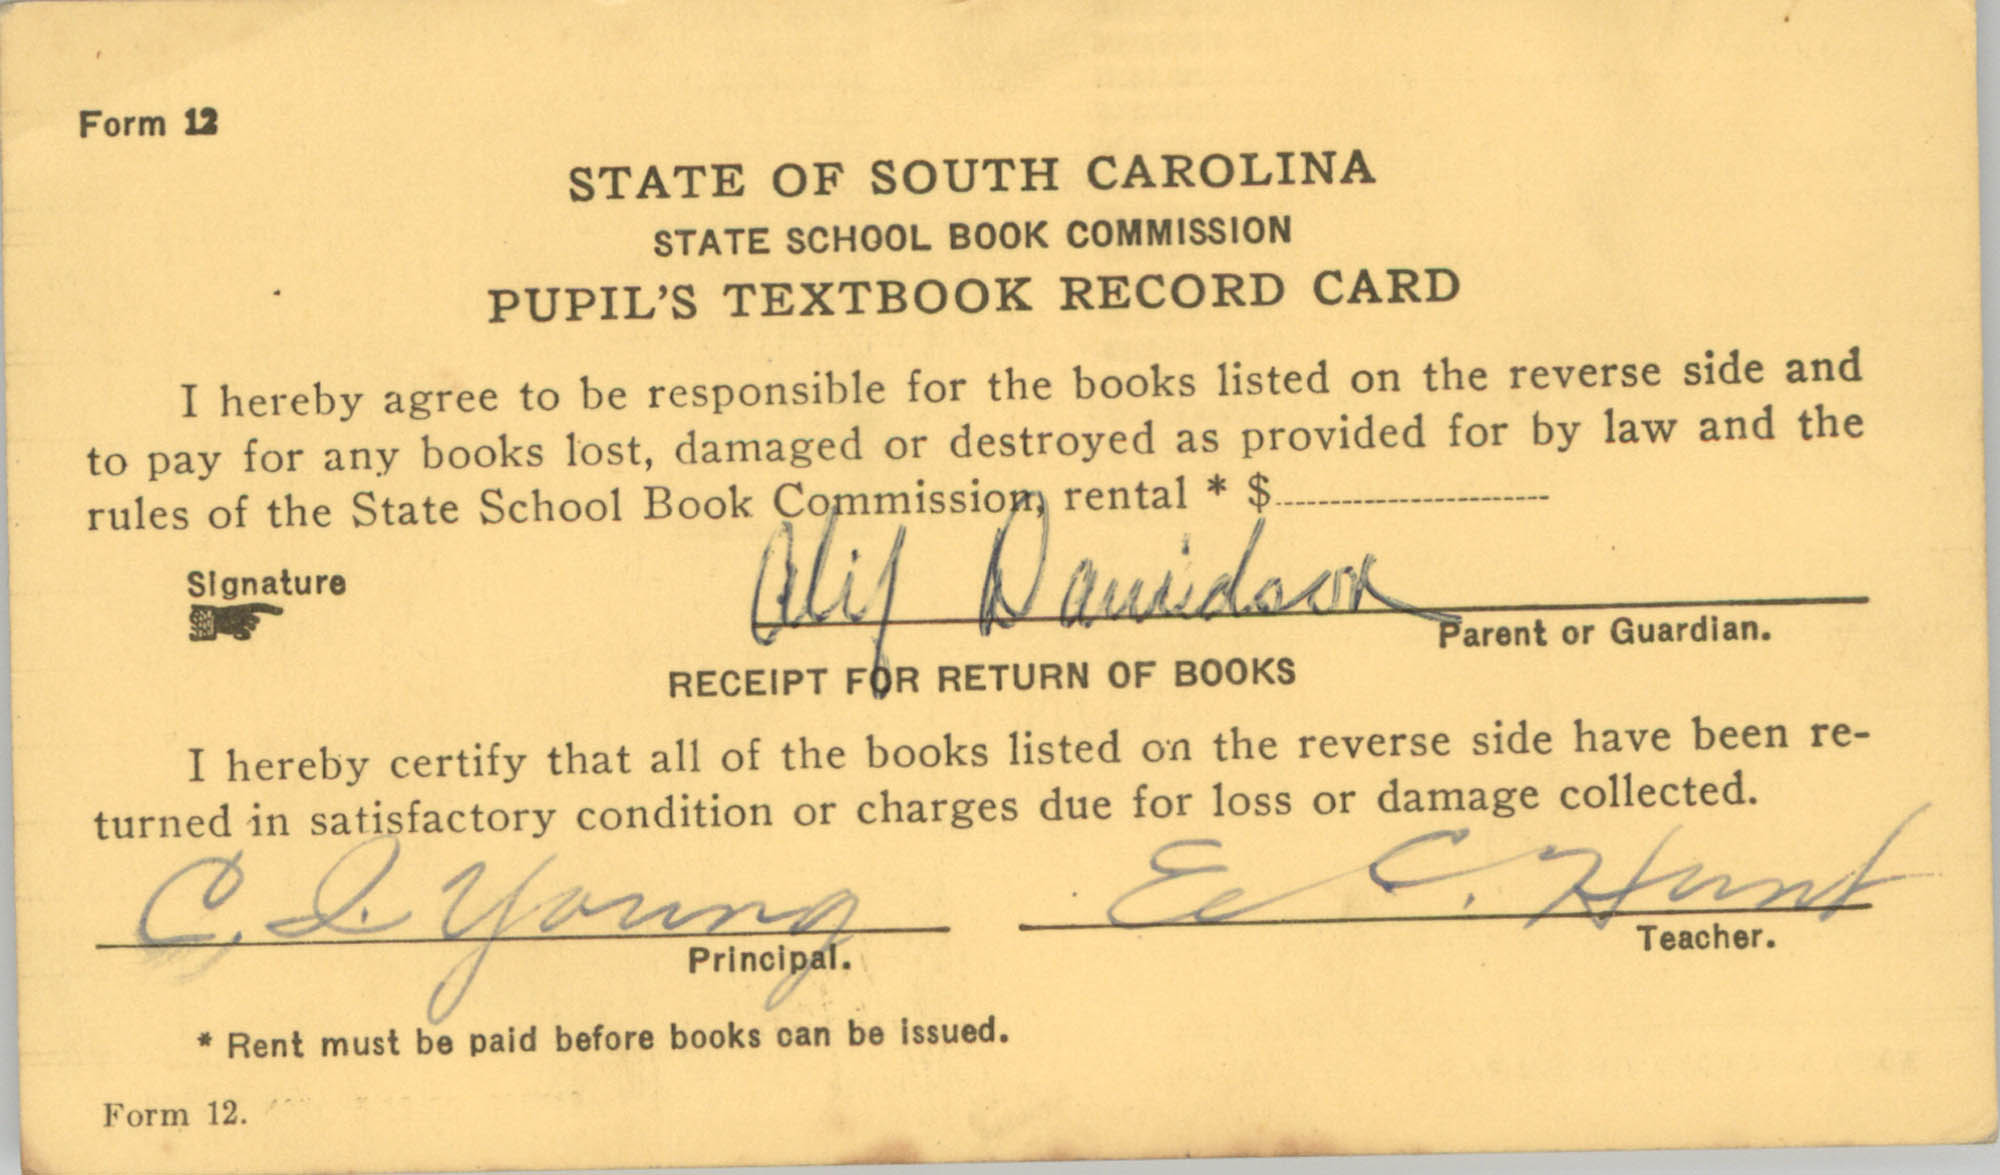 State of South Carolina State School Book Commission Pupil's Textbook Record Cards, Front Card 1